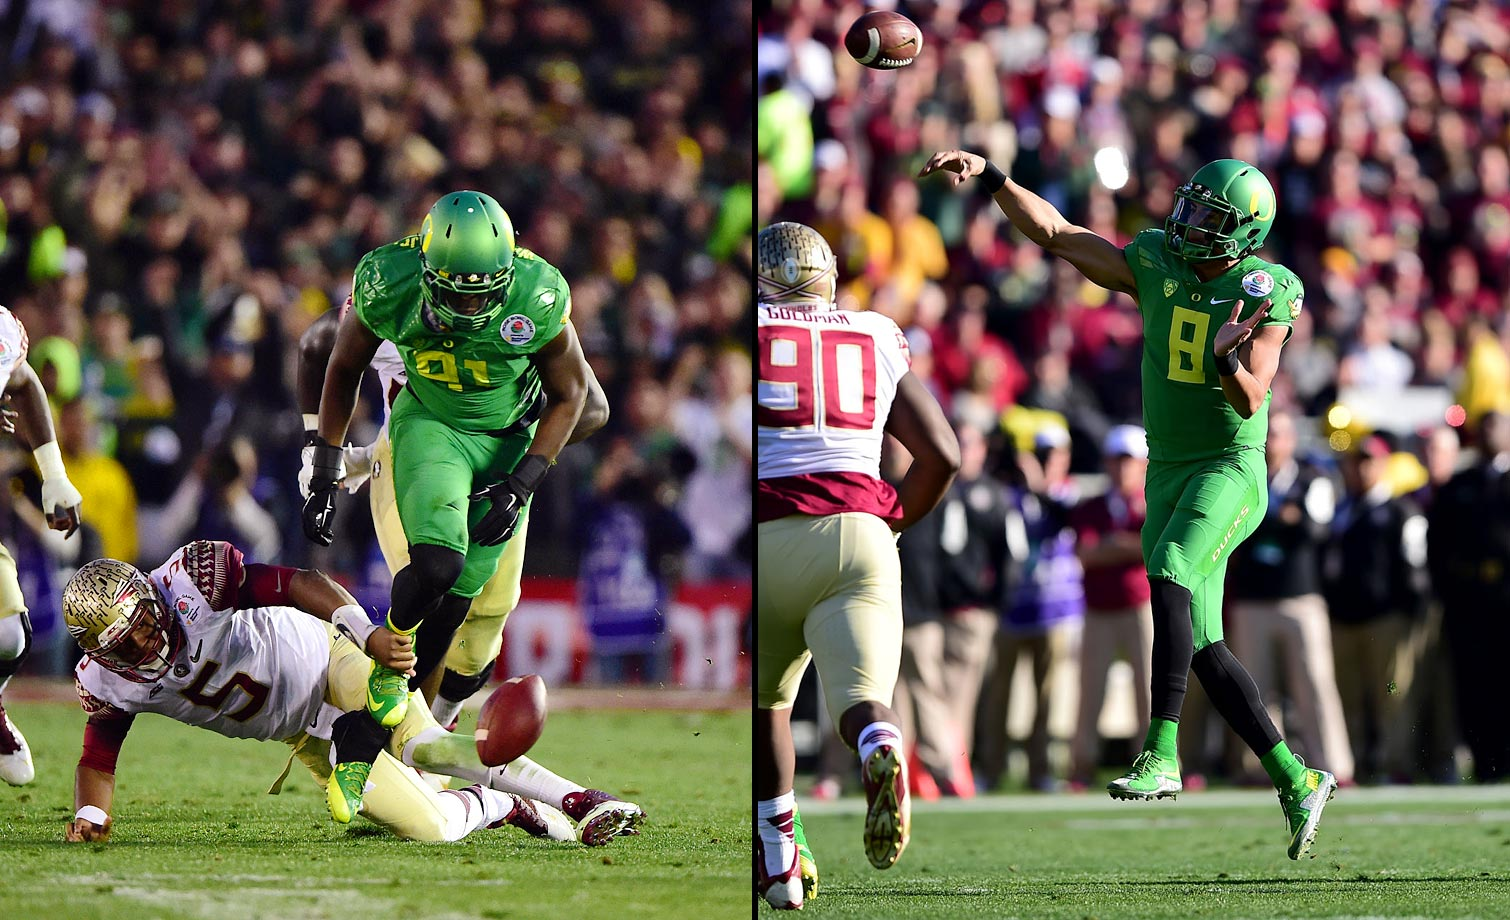 After leading by just five at halftime, the Ducks forced four turnovers in the third quarter and ended the Rose Bowl on a 34-0 run to rout the Seminoles and reach the national championship. Mariota contributed 400 yards of offense and three touchdowns.